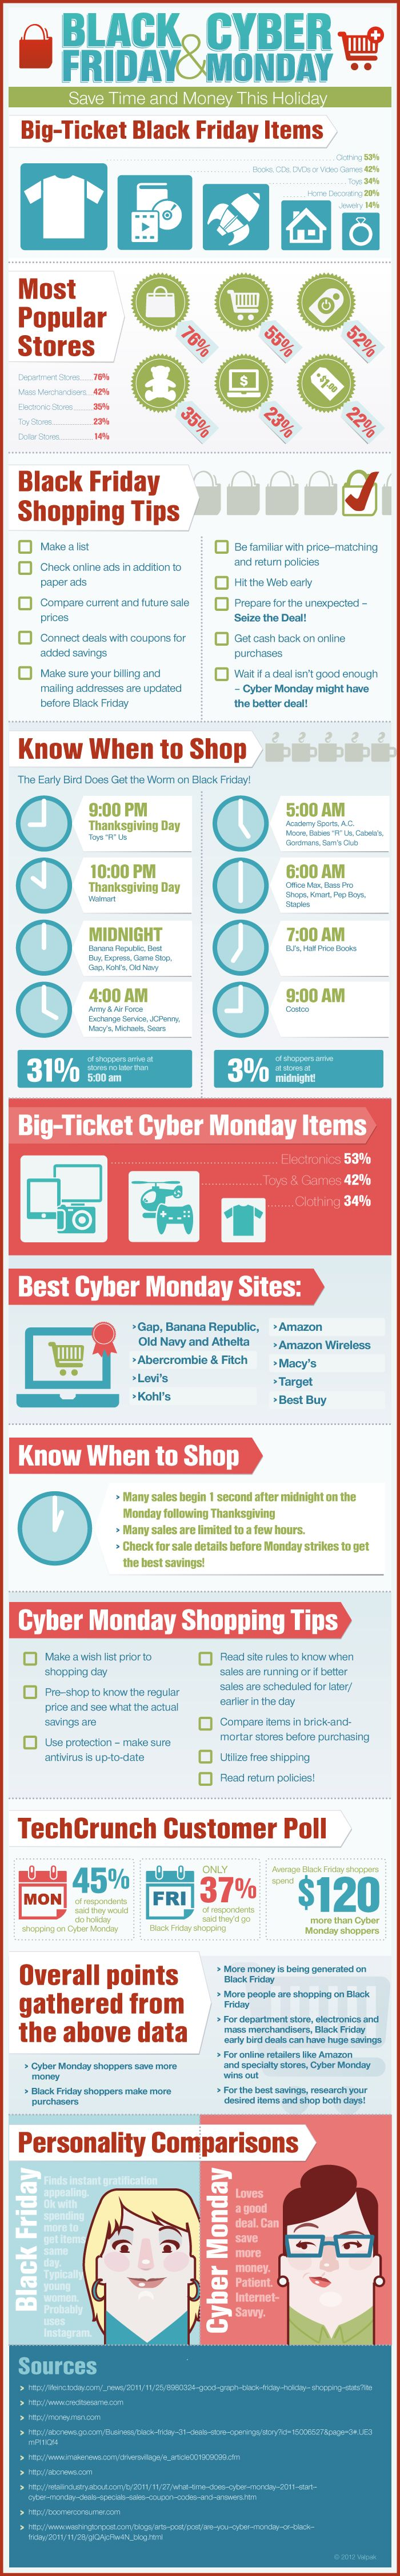 Black Friday Shopping Guide  blackfriday #infographic